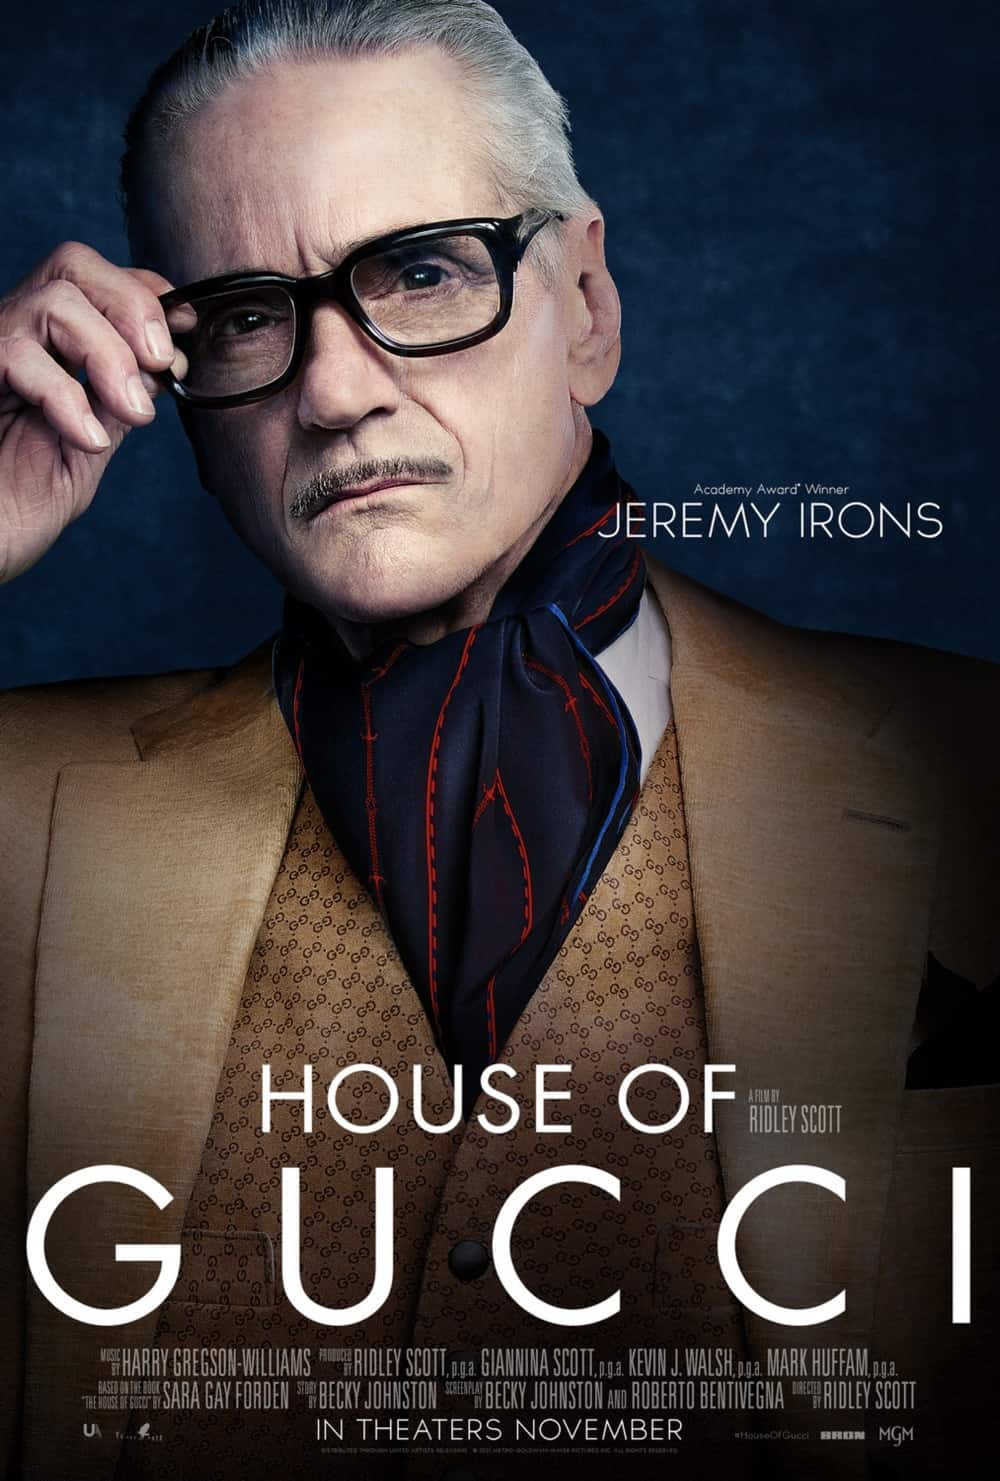 House Of Gucci Jeremy Irons Character Poster